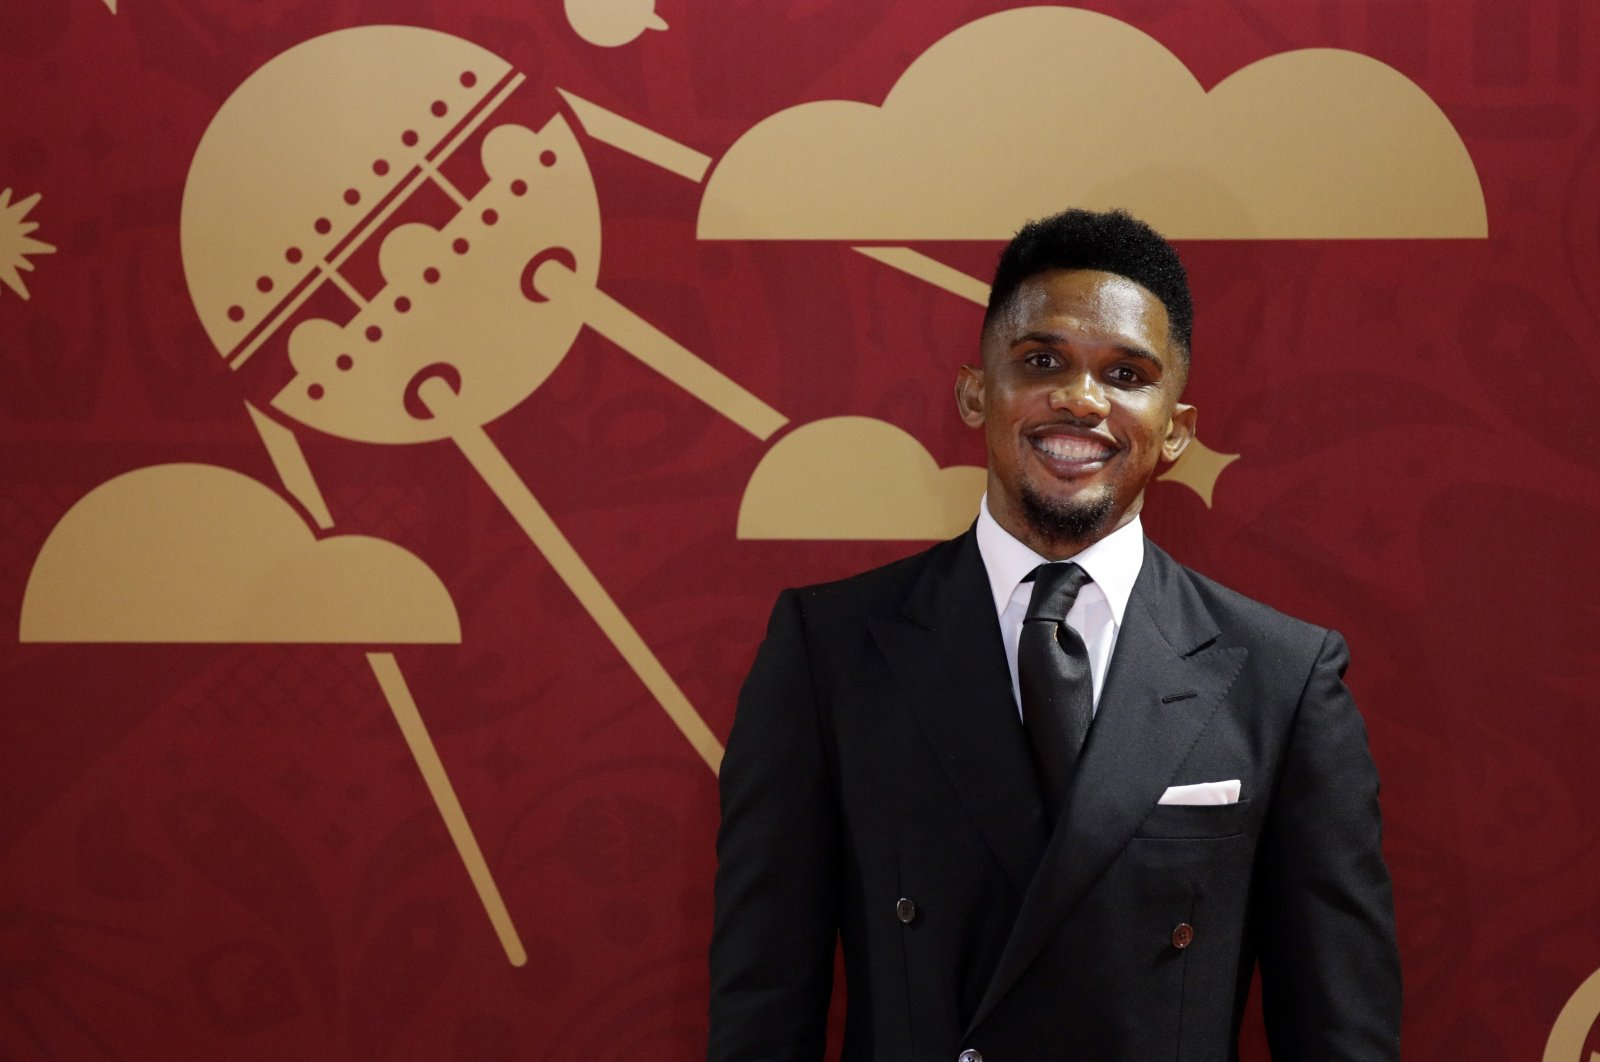 Former Cameroon, Barcelona footballer Samuel Eto'o at the 2018 FIFA World Cup draw in the Kremlin in Moscow, Russia, Dec. 1, 2017. (AP Photo)